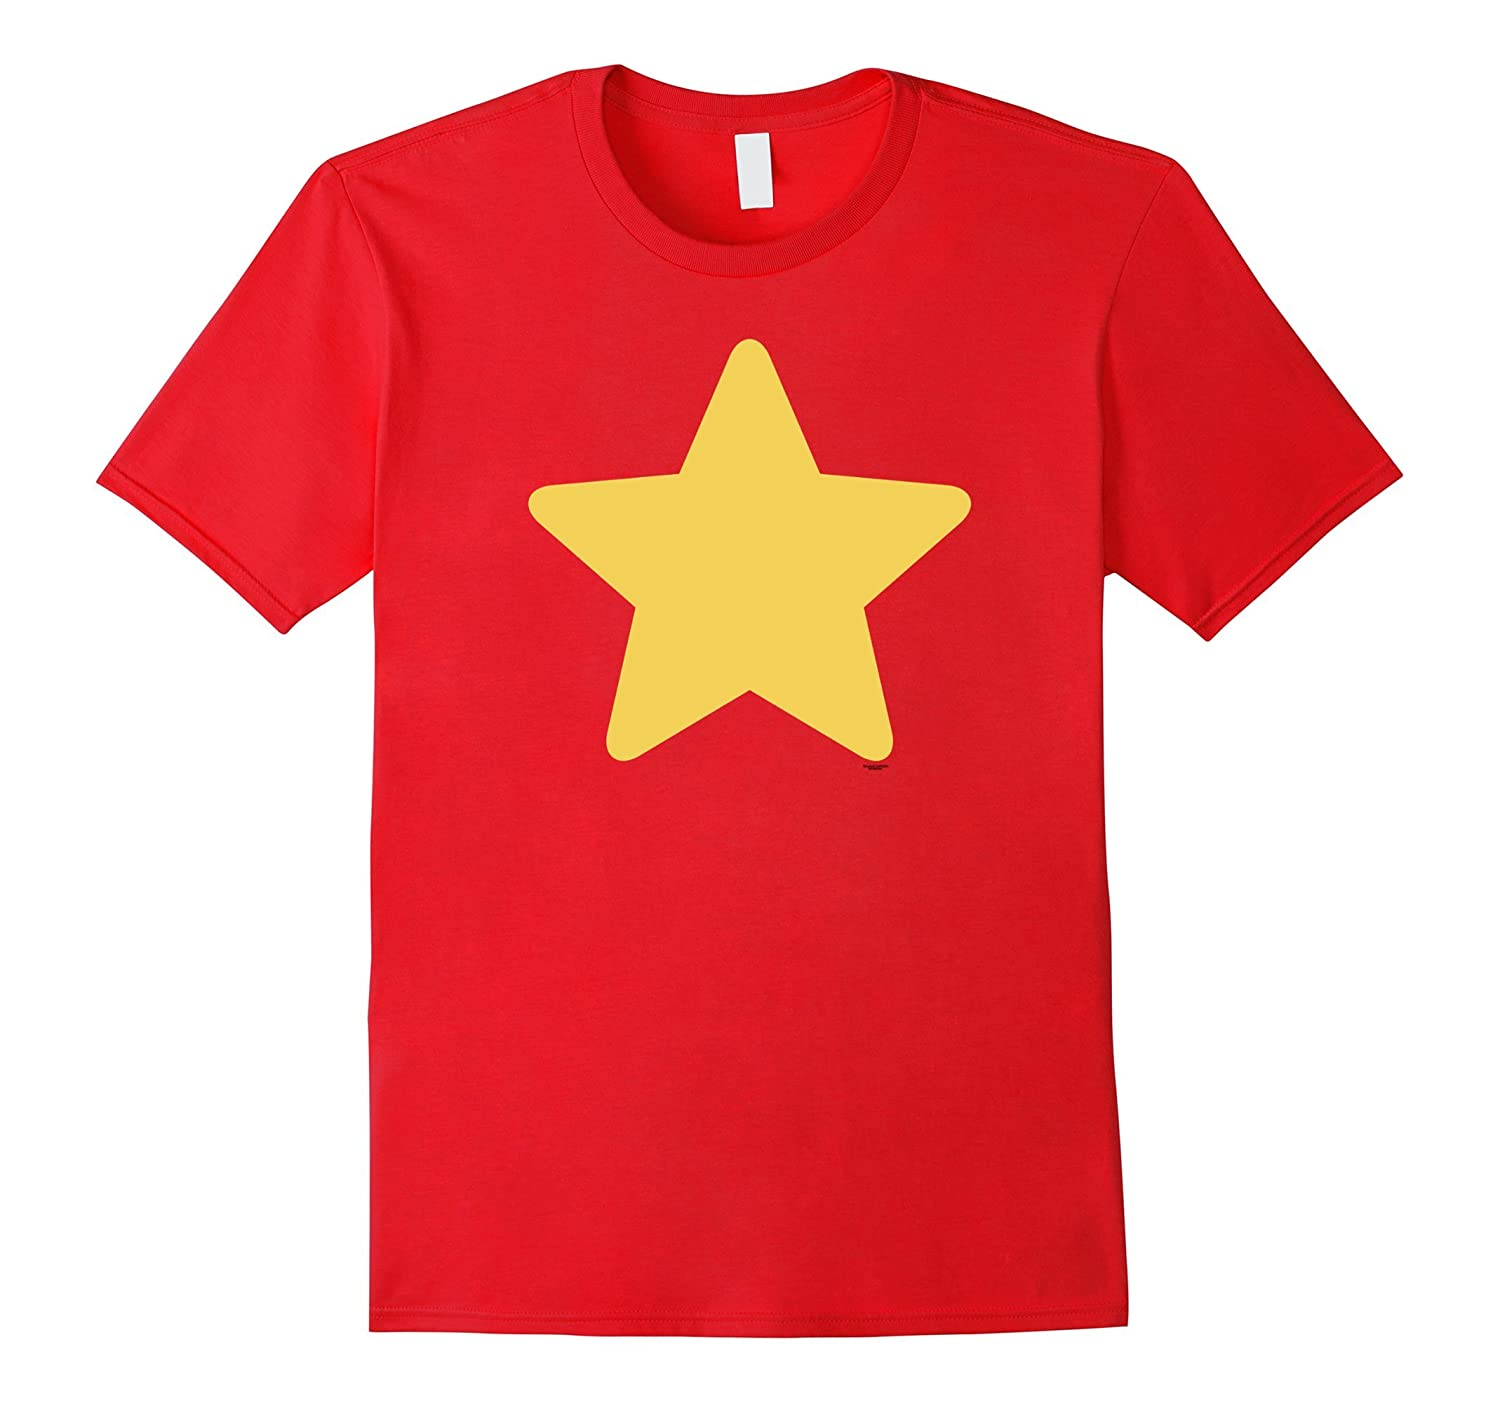 CN Steven Universe Star Tee Costume Graphic T-Shirt-RT